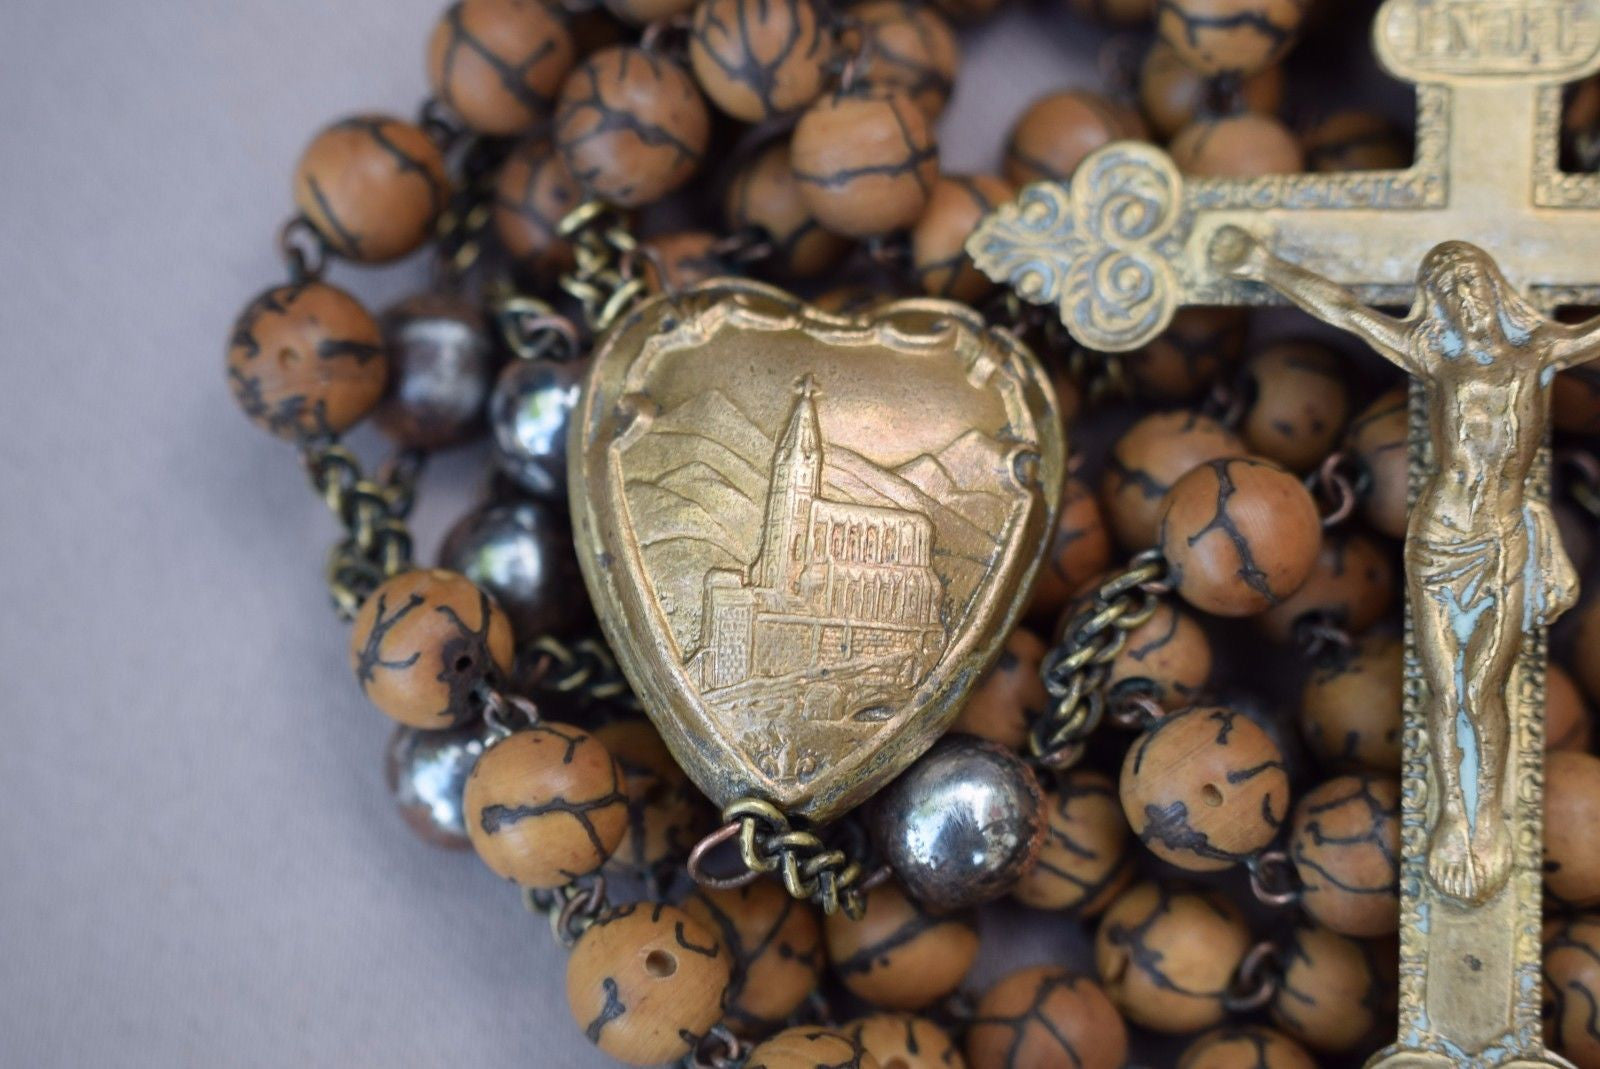 "Pilgrimage 54"" Long Lourdes Rosary FREE SHIPPING! - Charmantiques"